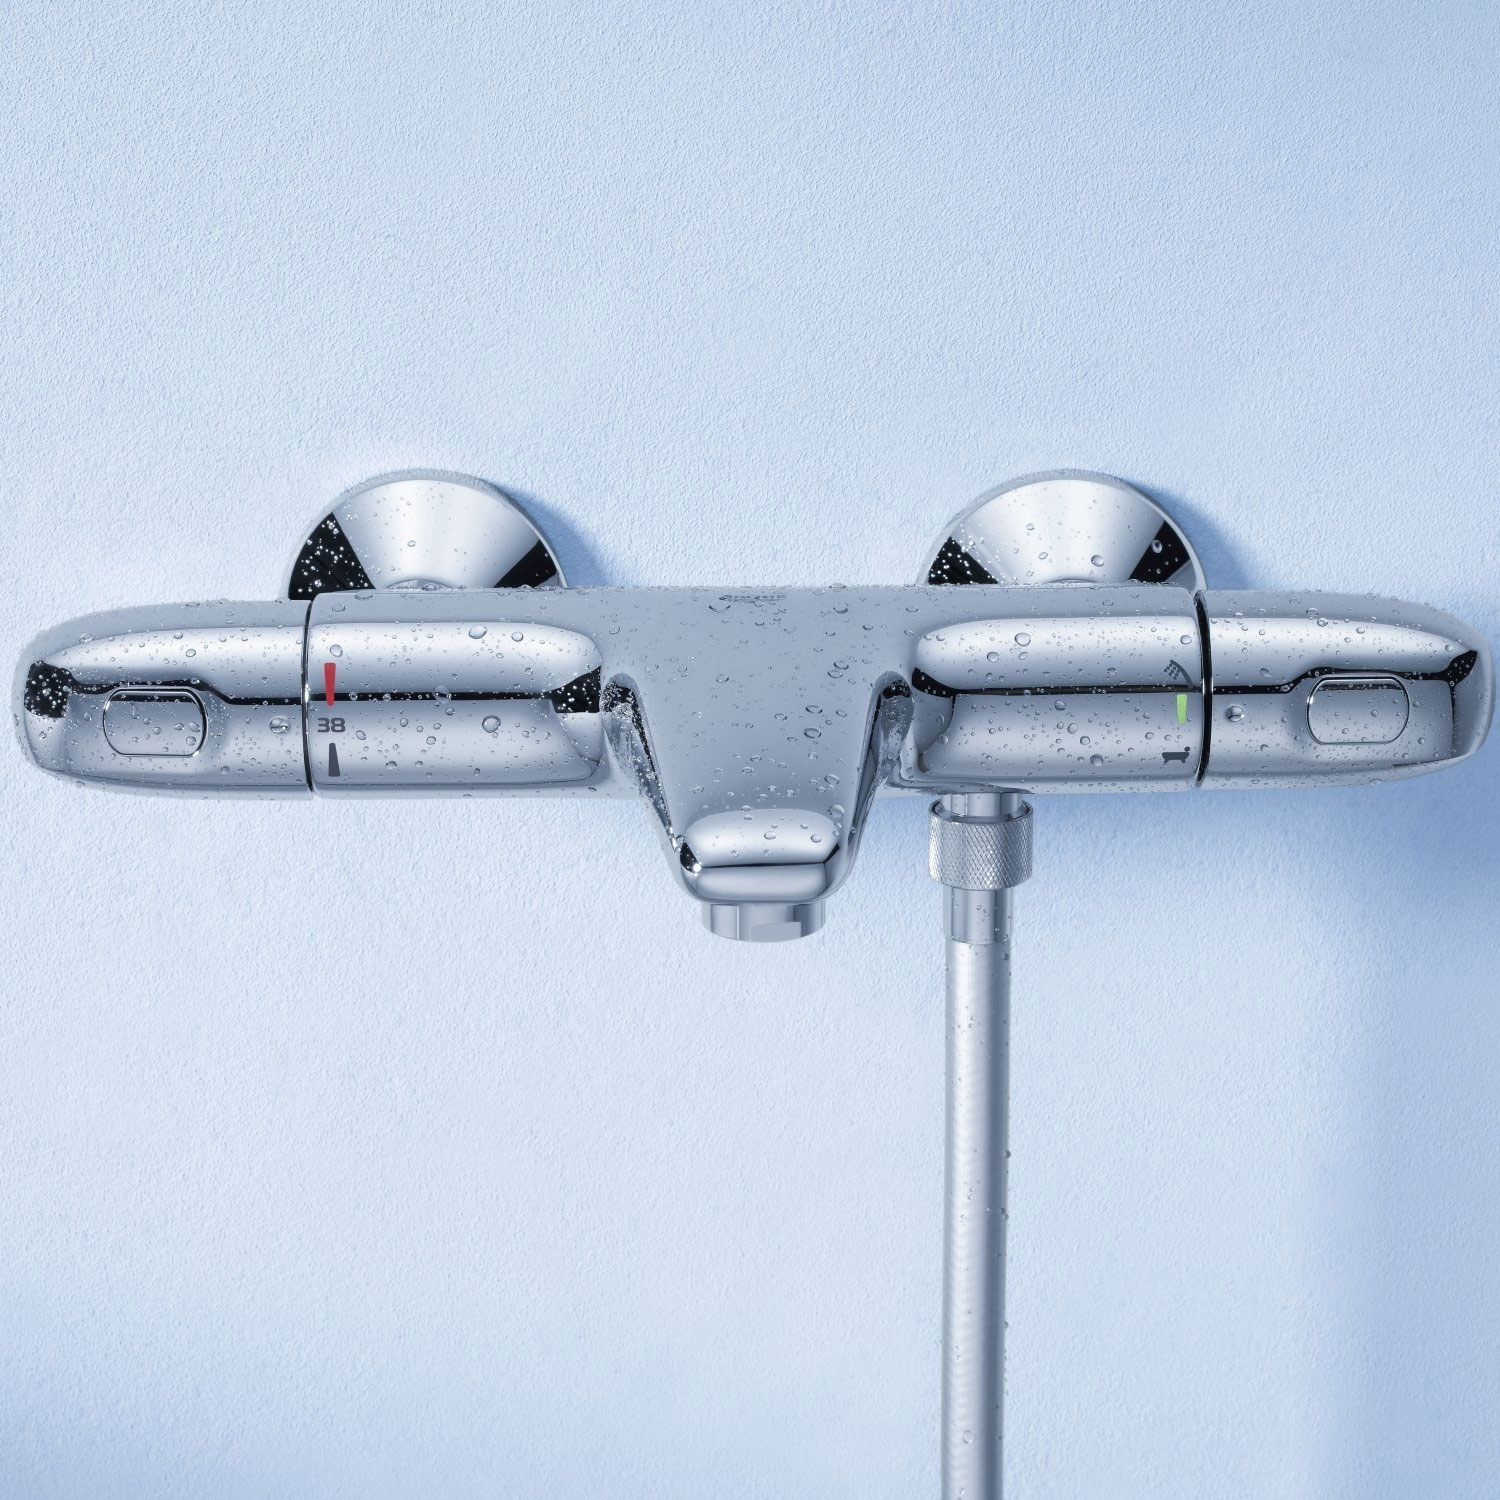 Grohe Grohtherm 1000 Thermostatic Bath Shower Mixer Tap Wall Mounted - Chrome